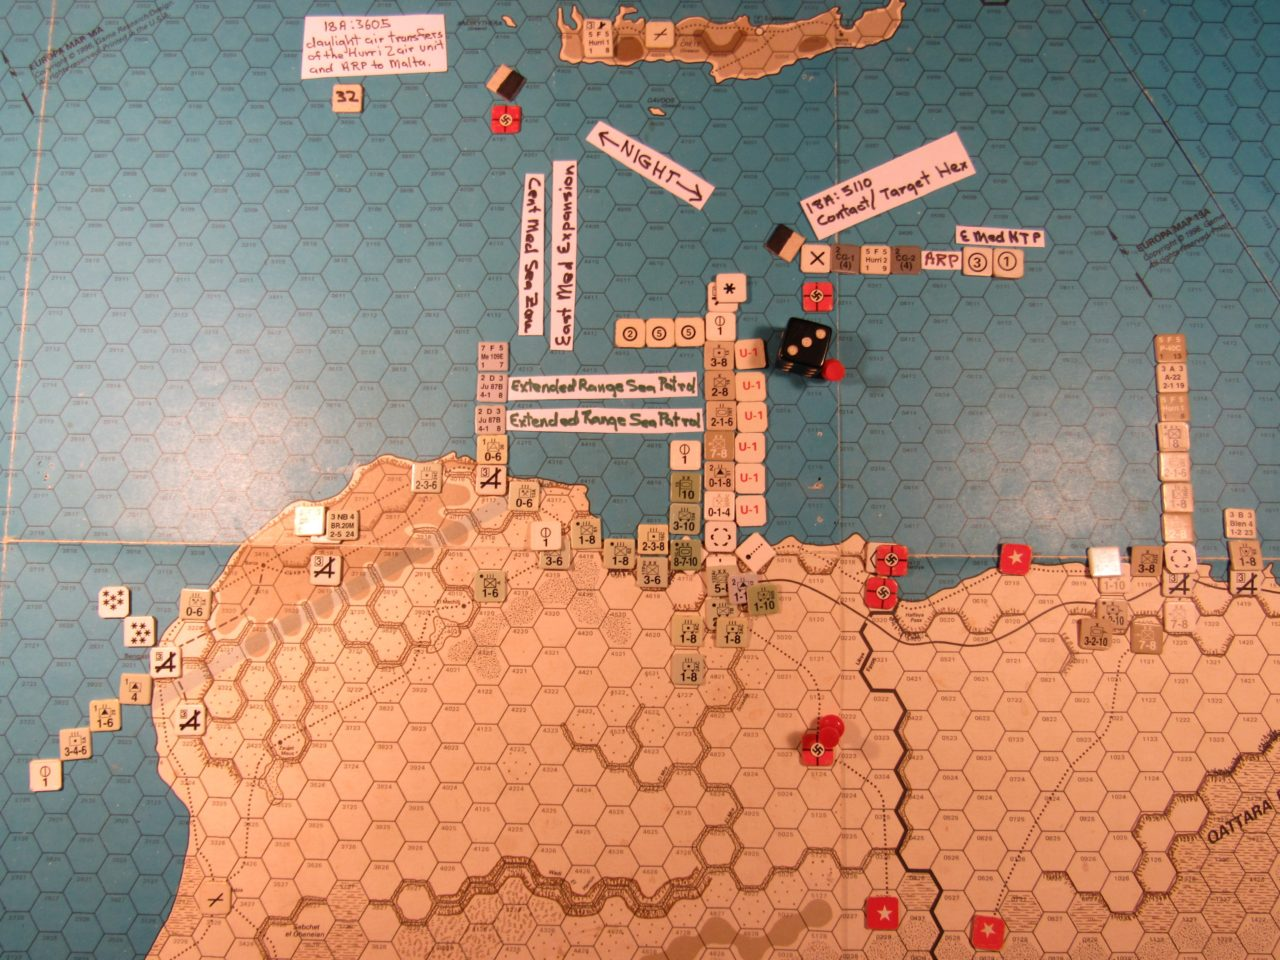 WW ME/ER-II/Crete Scenario May I 41 Allied early Movement Phase: naval movement segment detail of the Allied task force sailing towards Malta